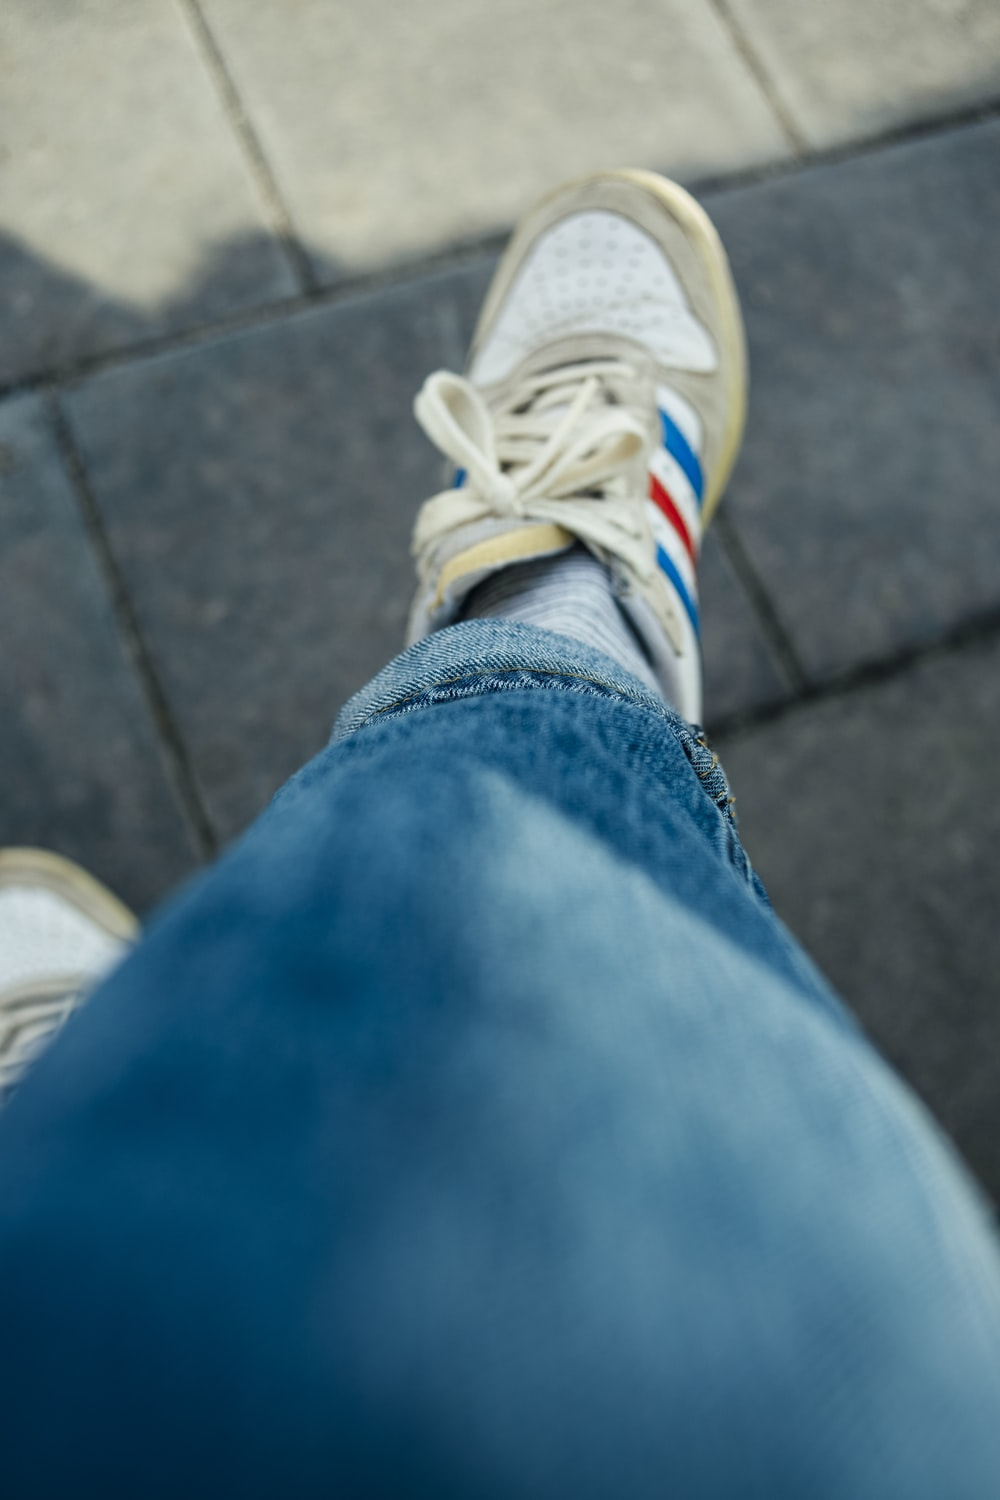 person in blue denim jeans wearing white and yellow adidas sneakers